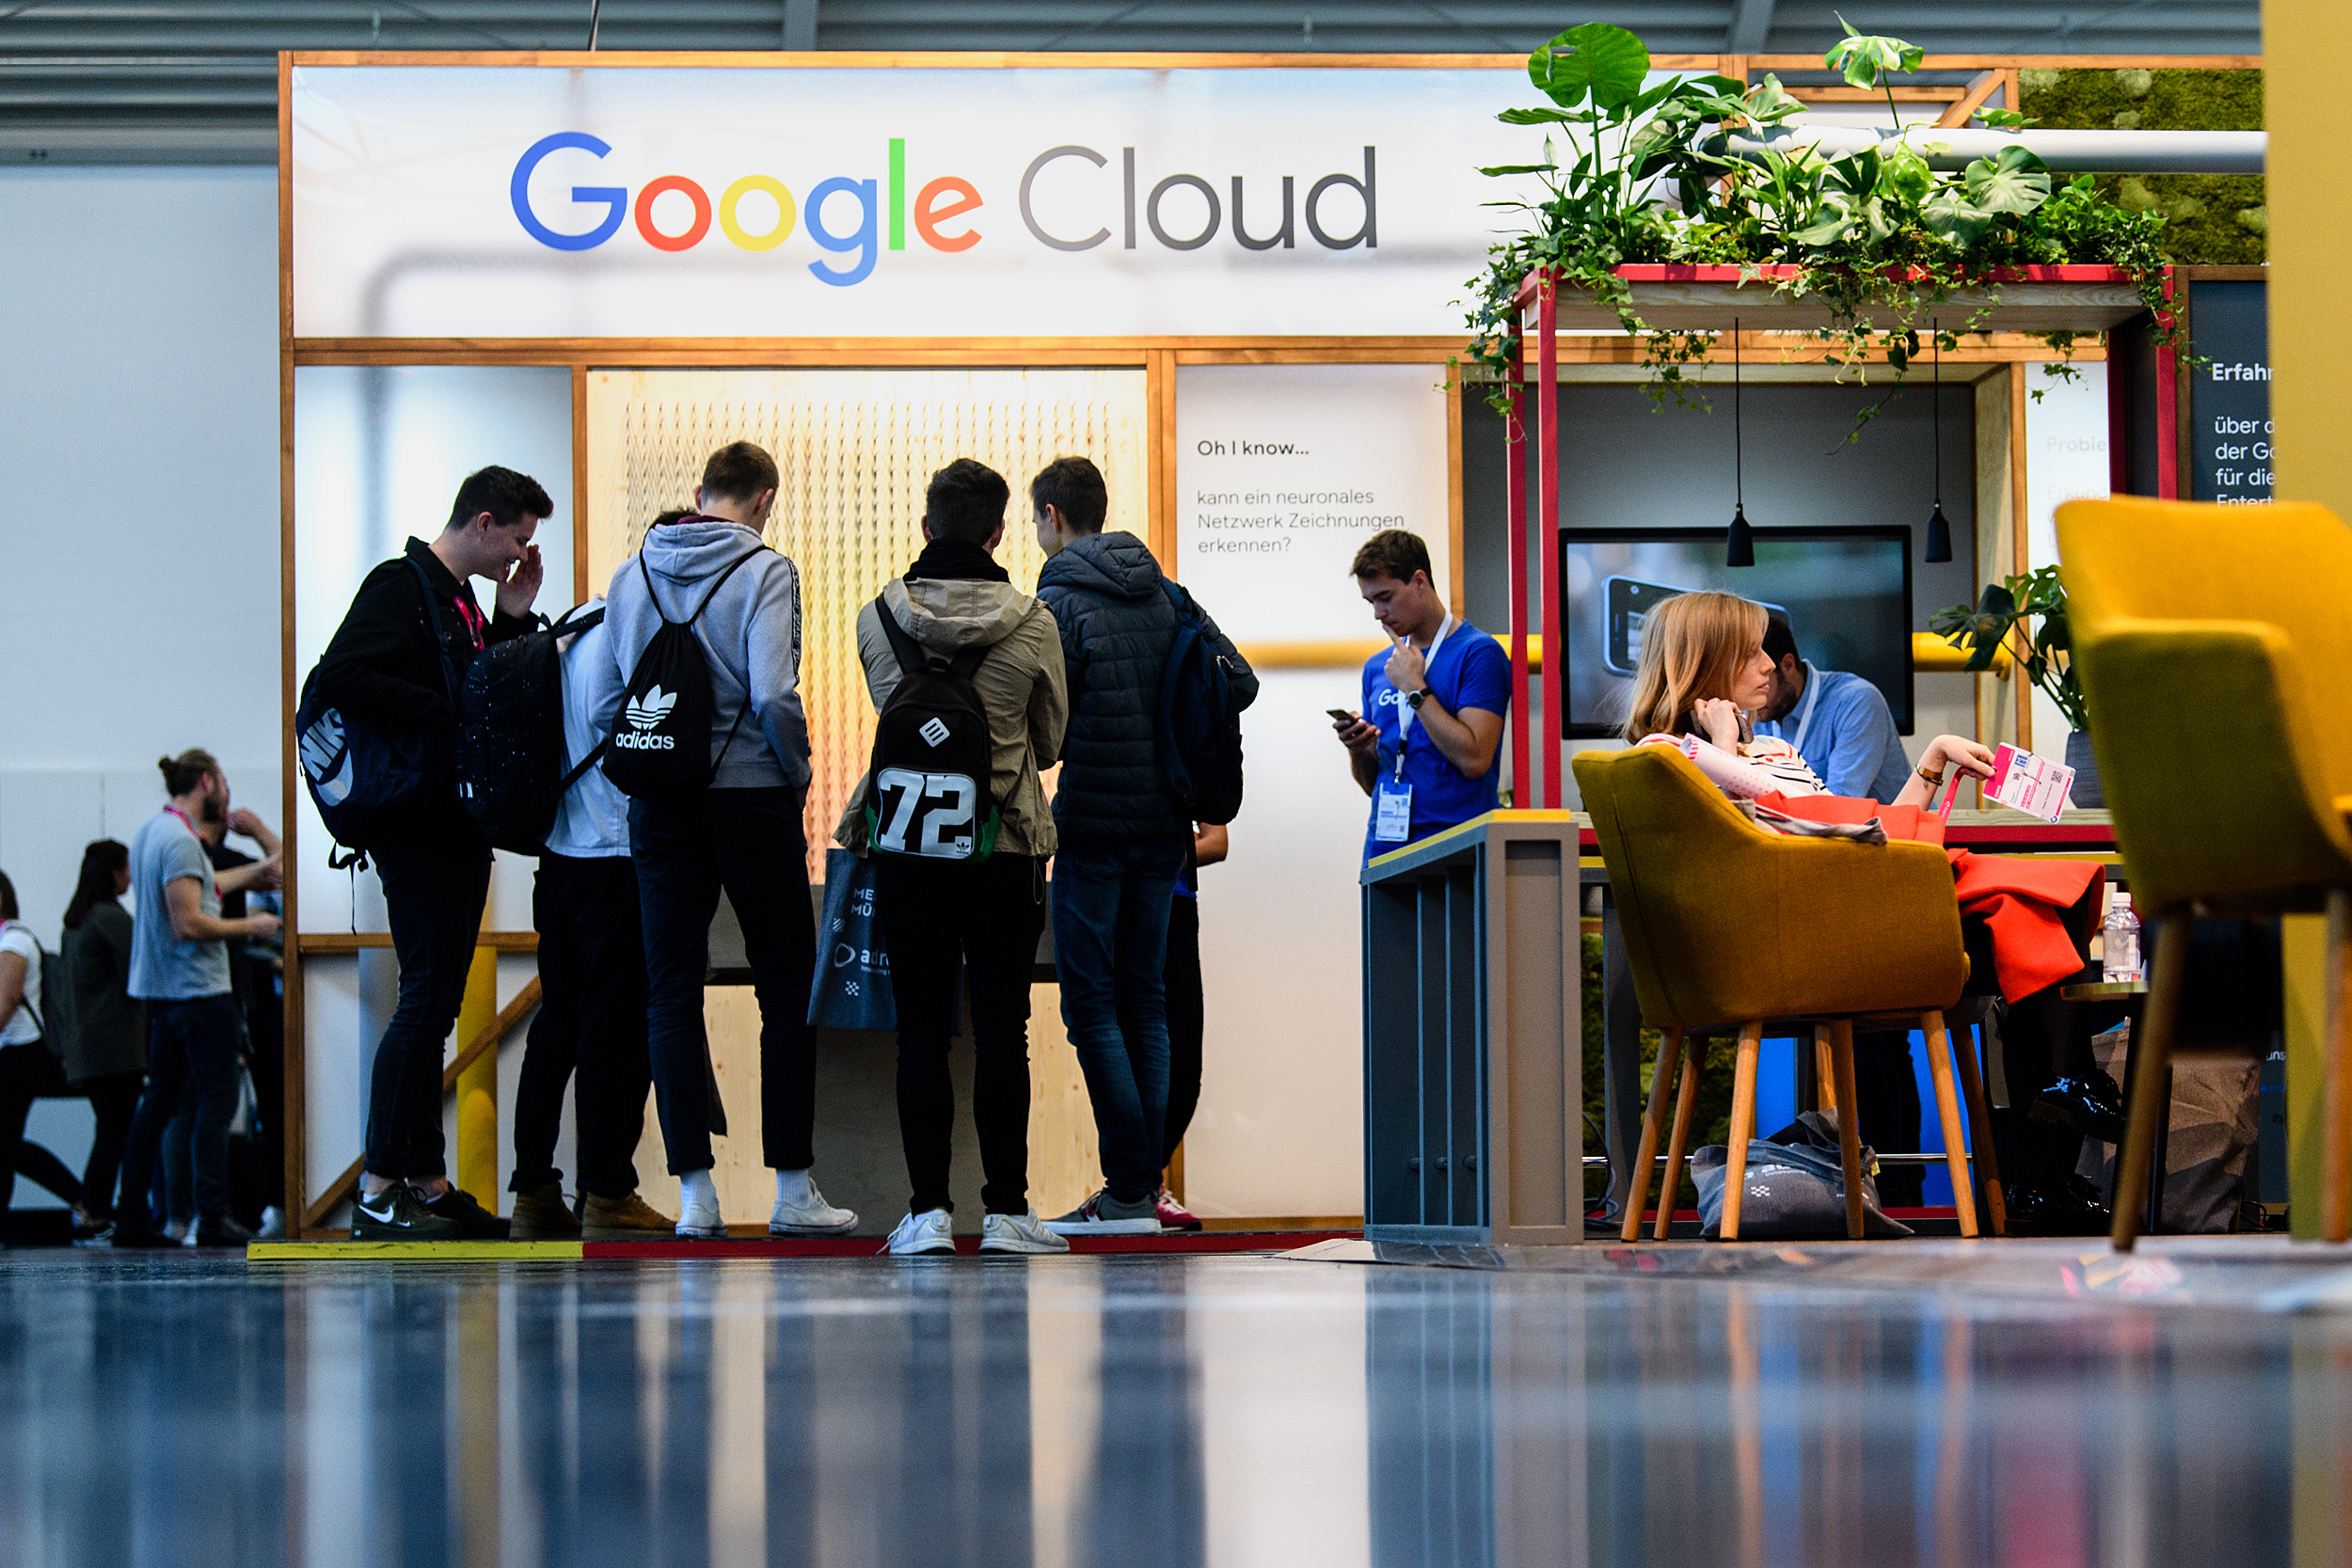 Does Google harm local search rivals? E.U. antitrust regulators ask